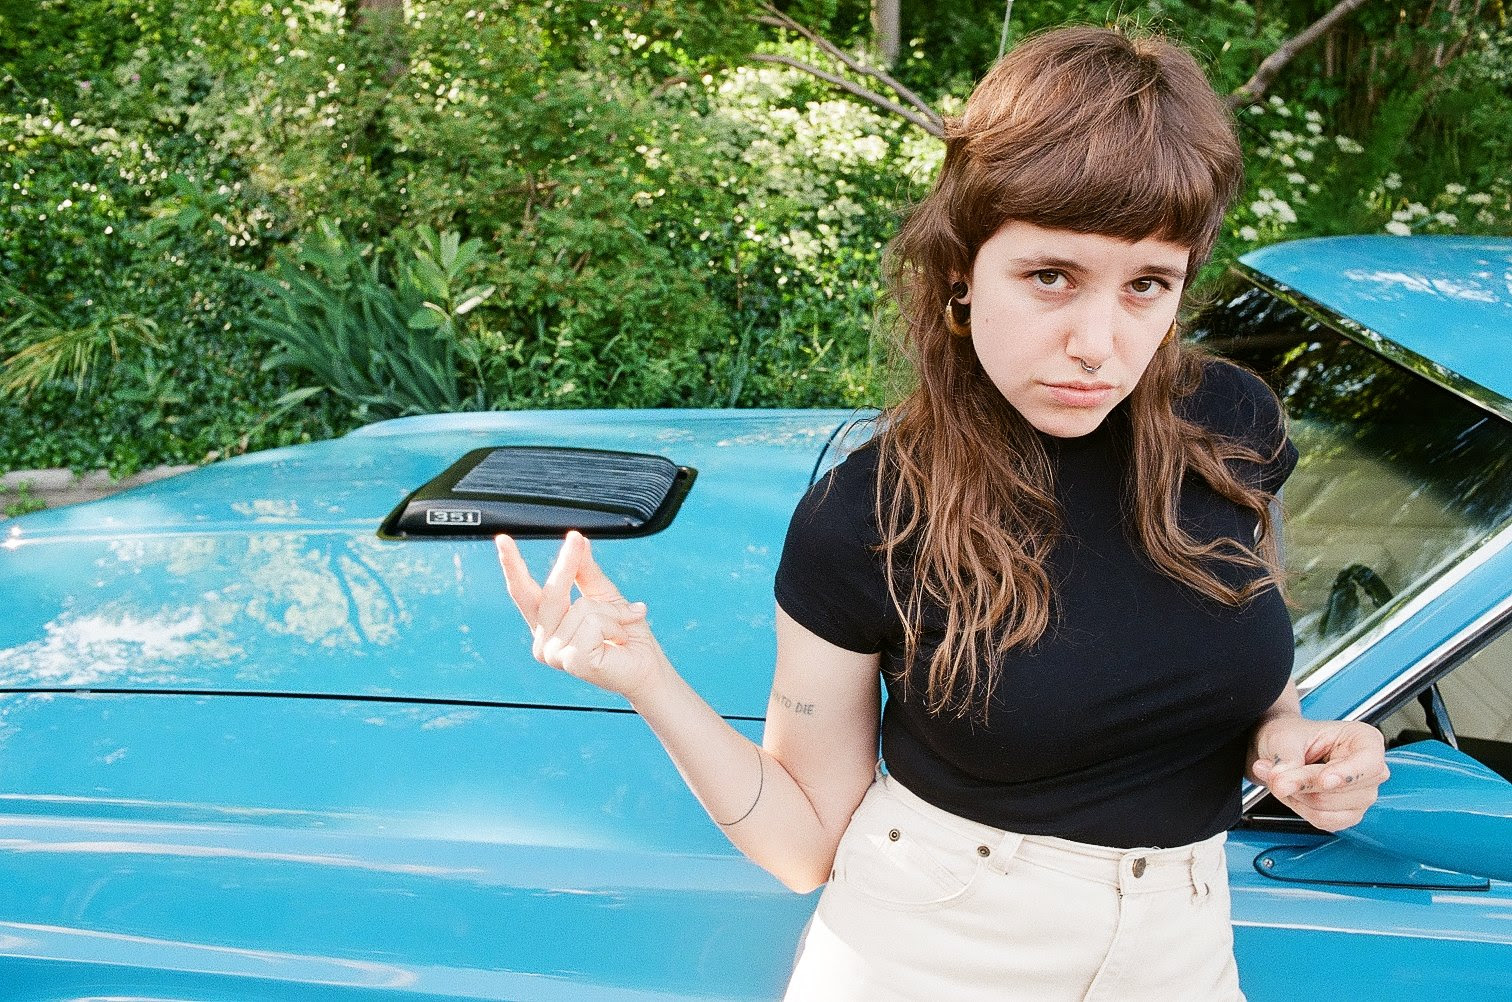 """""""So Cold"""" by Cat Clde is Northern Transmissions' 'Song of the Day'"""